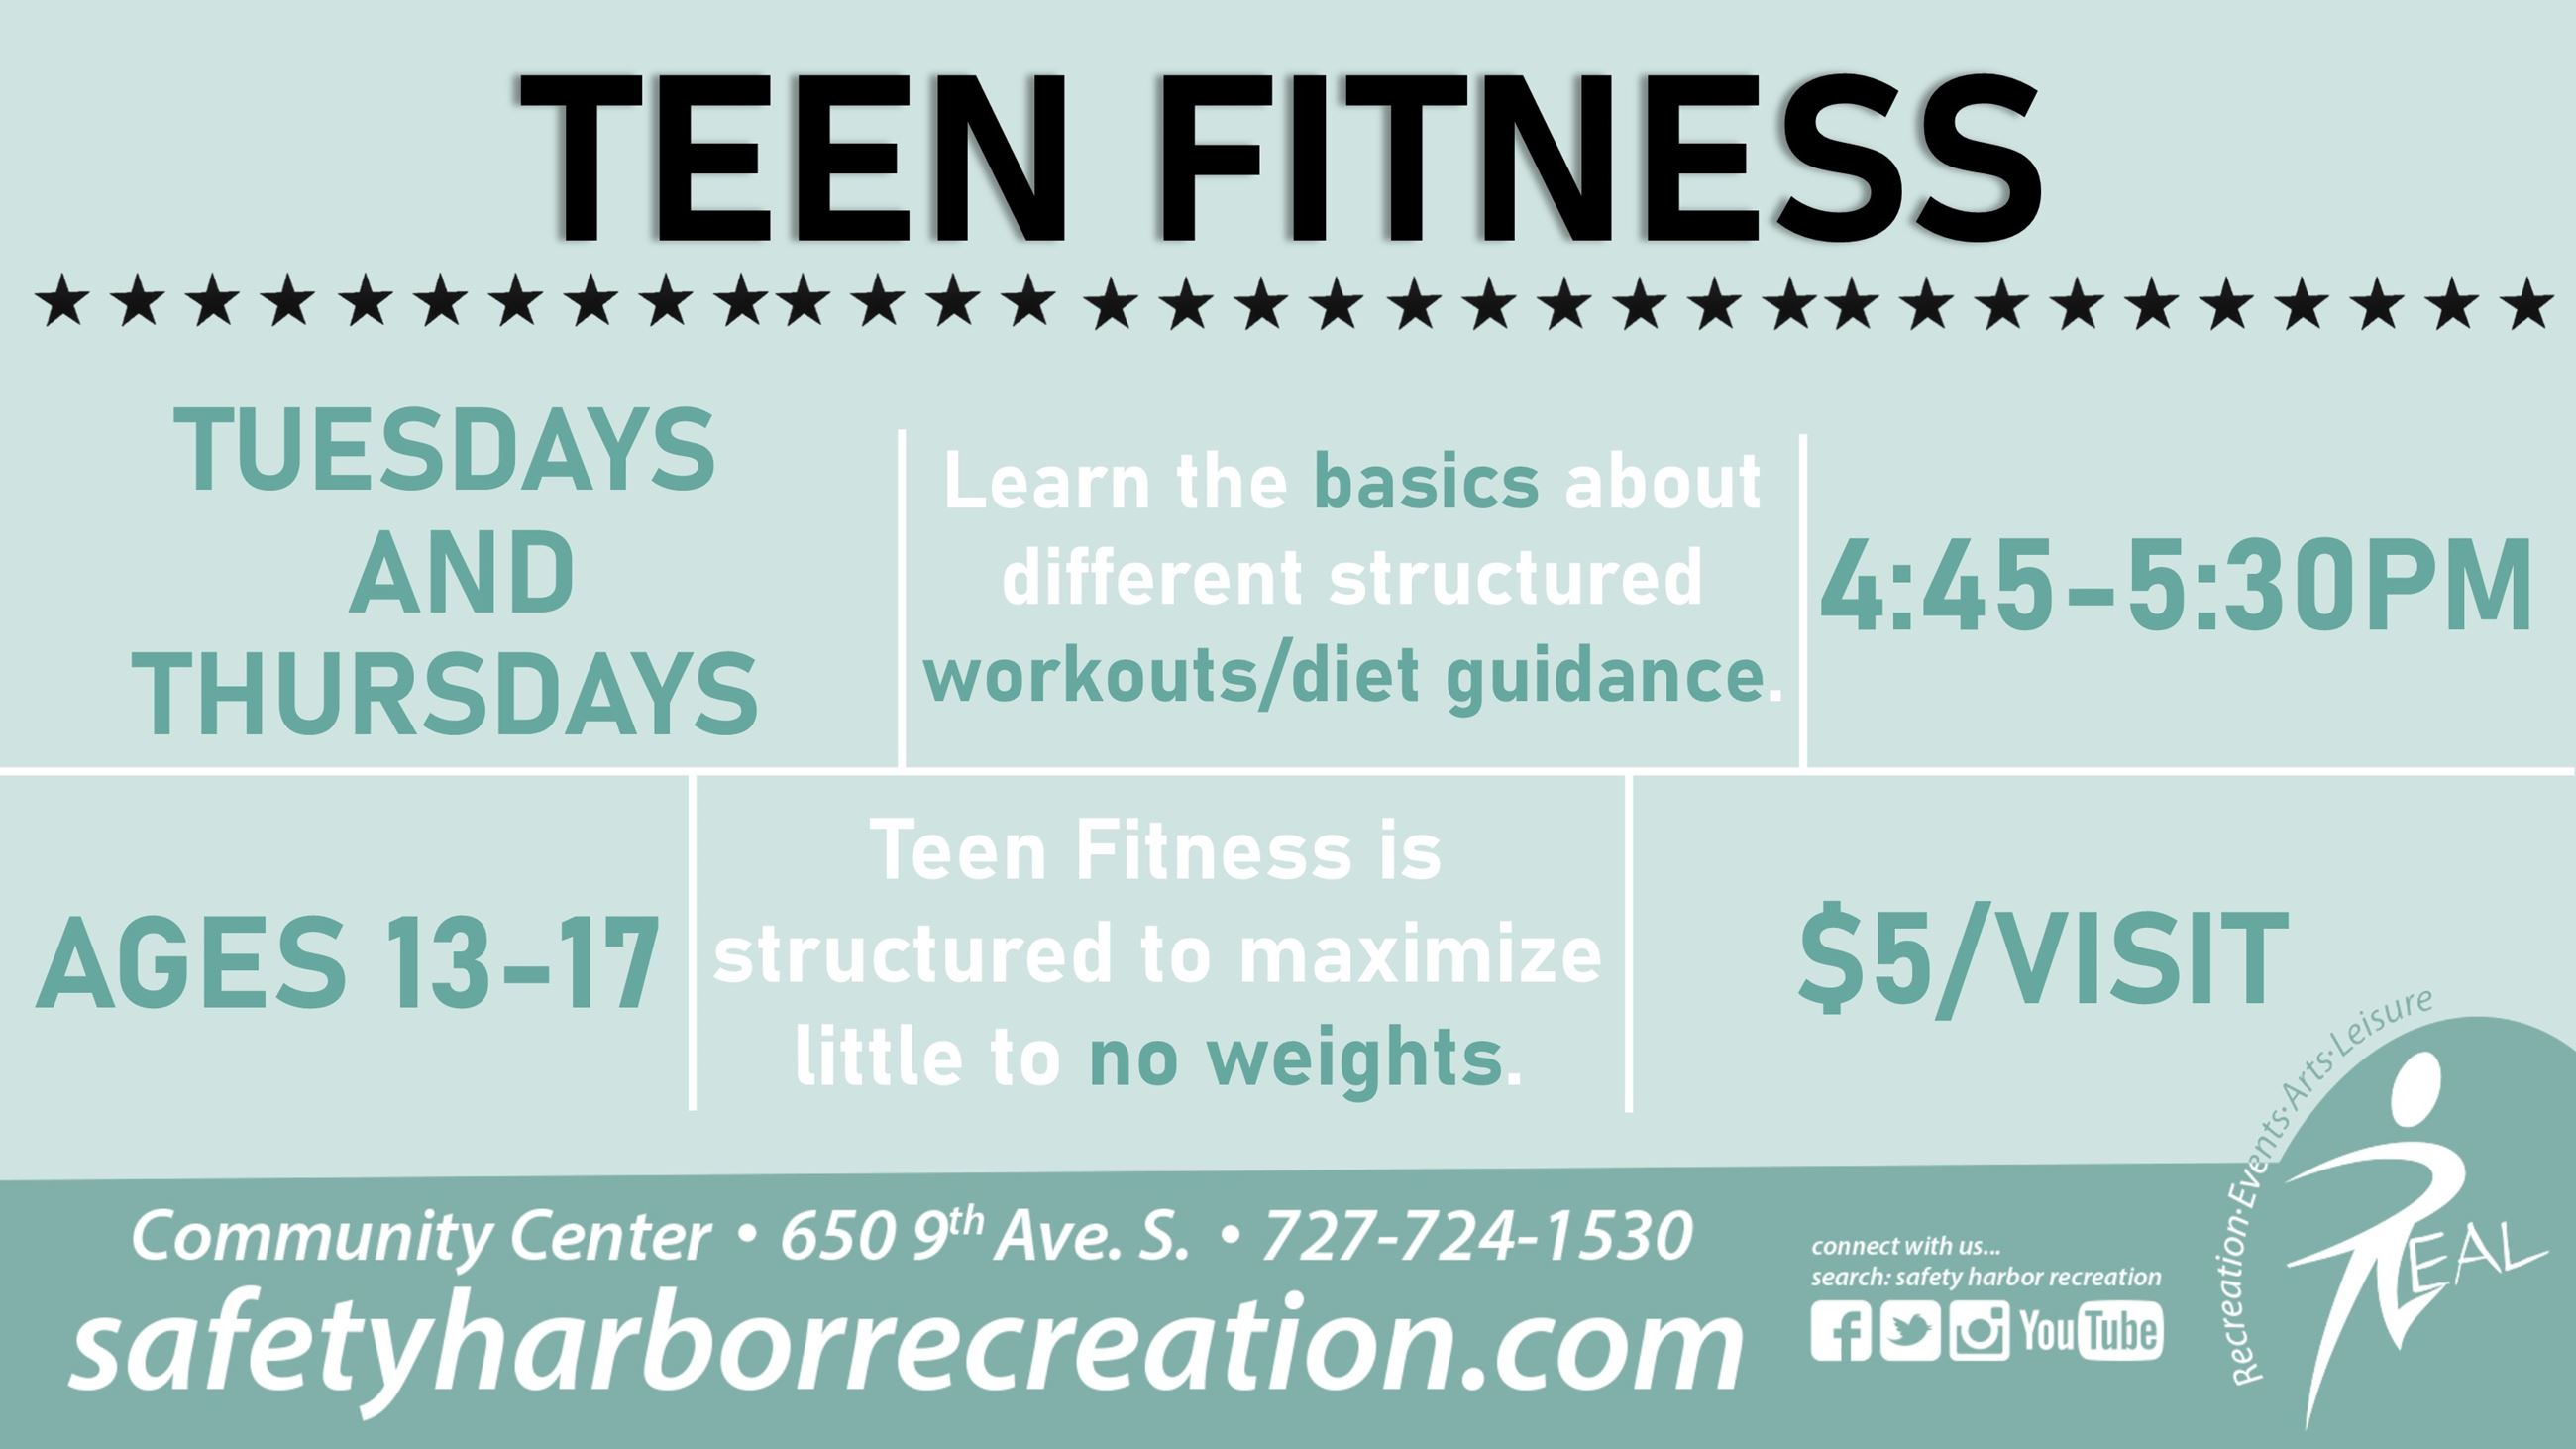 Teen Fitness, Tuesdays & Thursdays, 4:45-5:30pm, Ages 13-17, $5/visit, Community Center